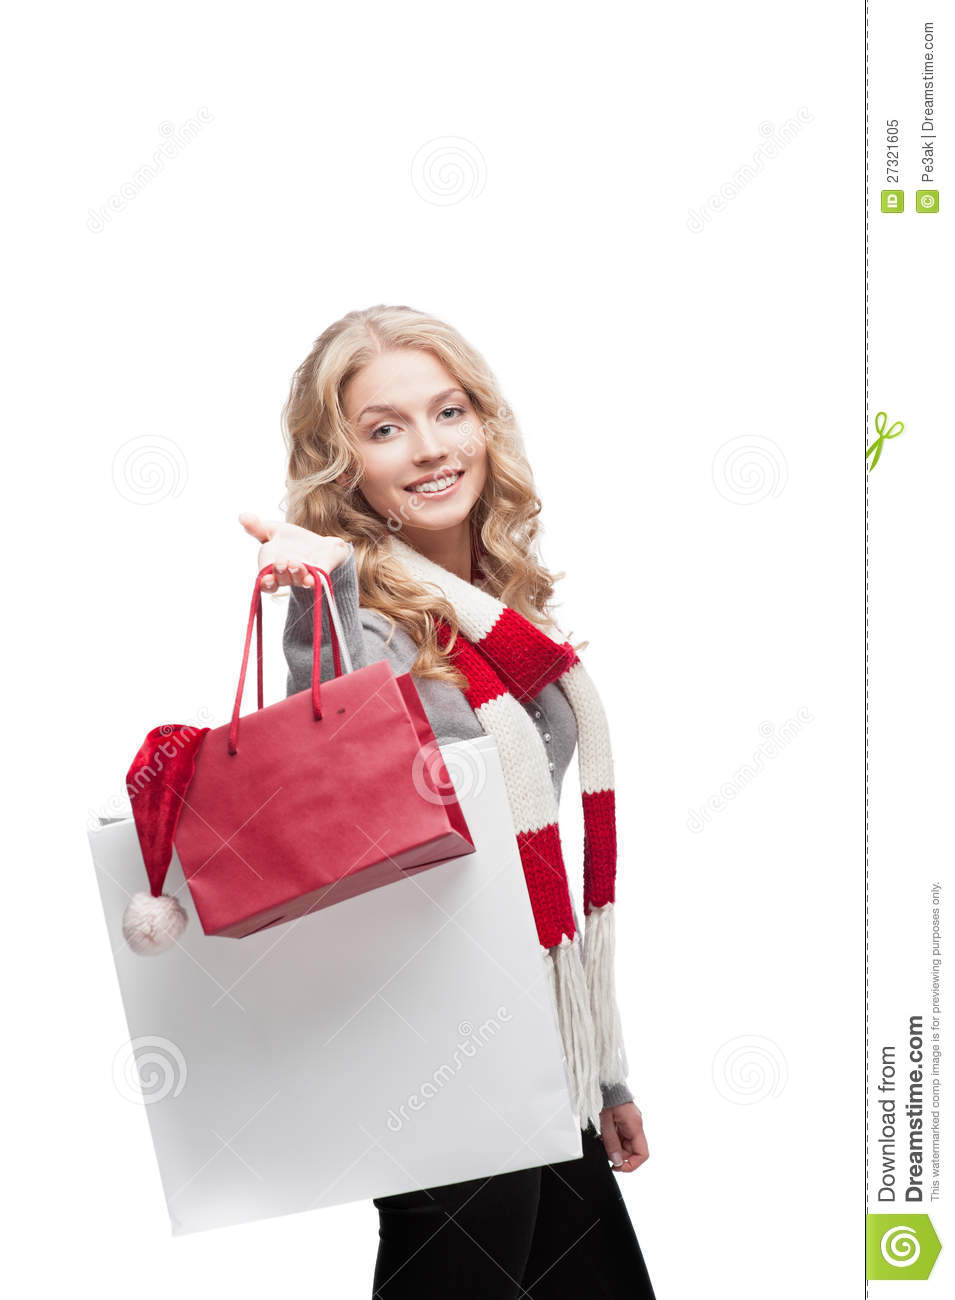 Elegant Young Woman Holding Shopping Bags Stock Photo - Image 24766820